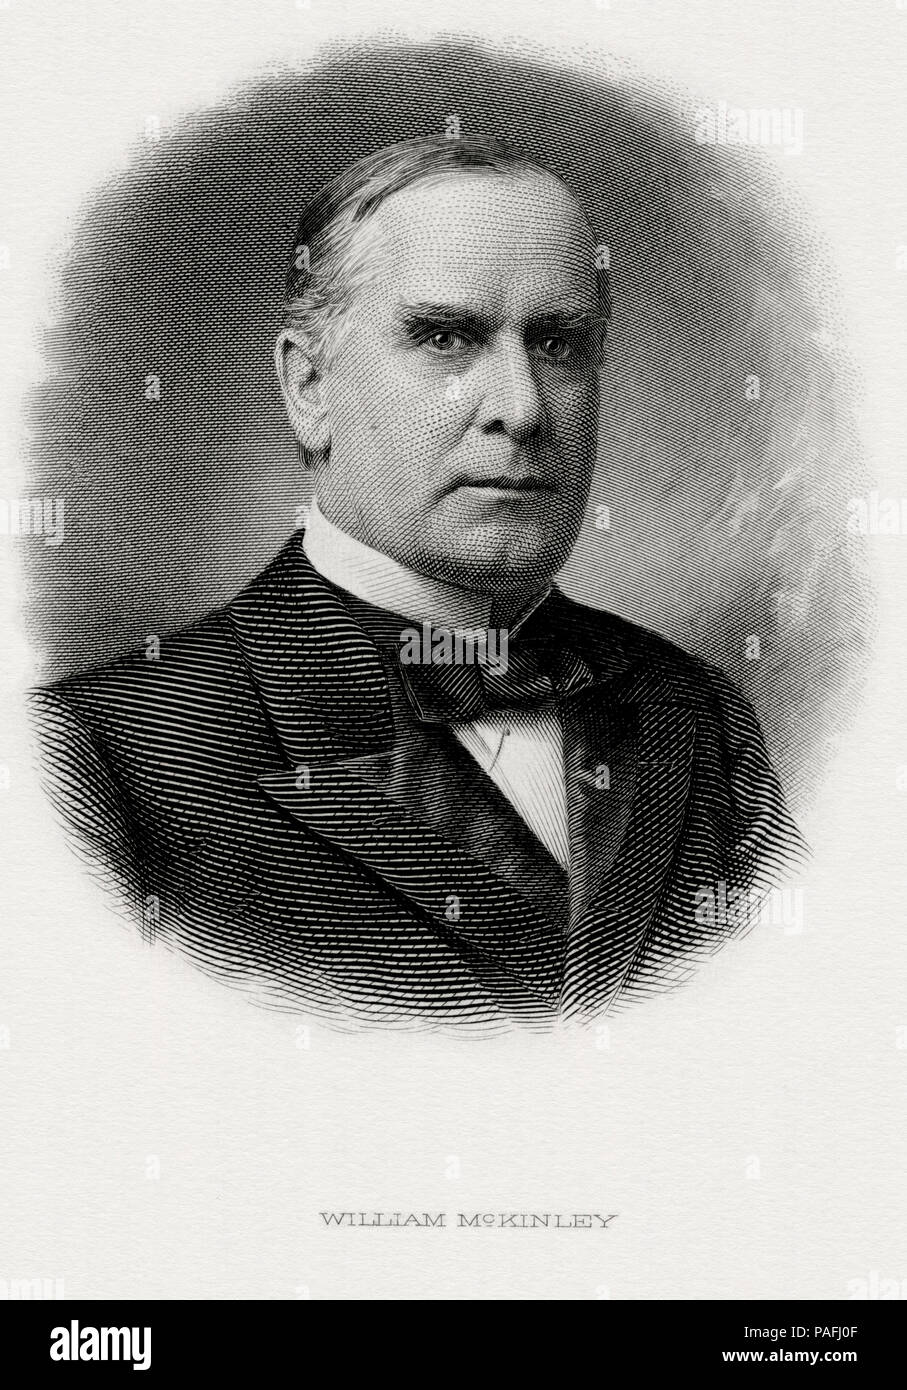 President William McKinley Engraved Portrait - Stock Image